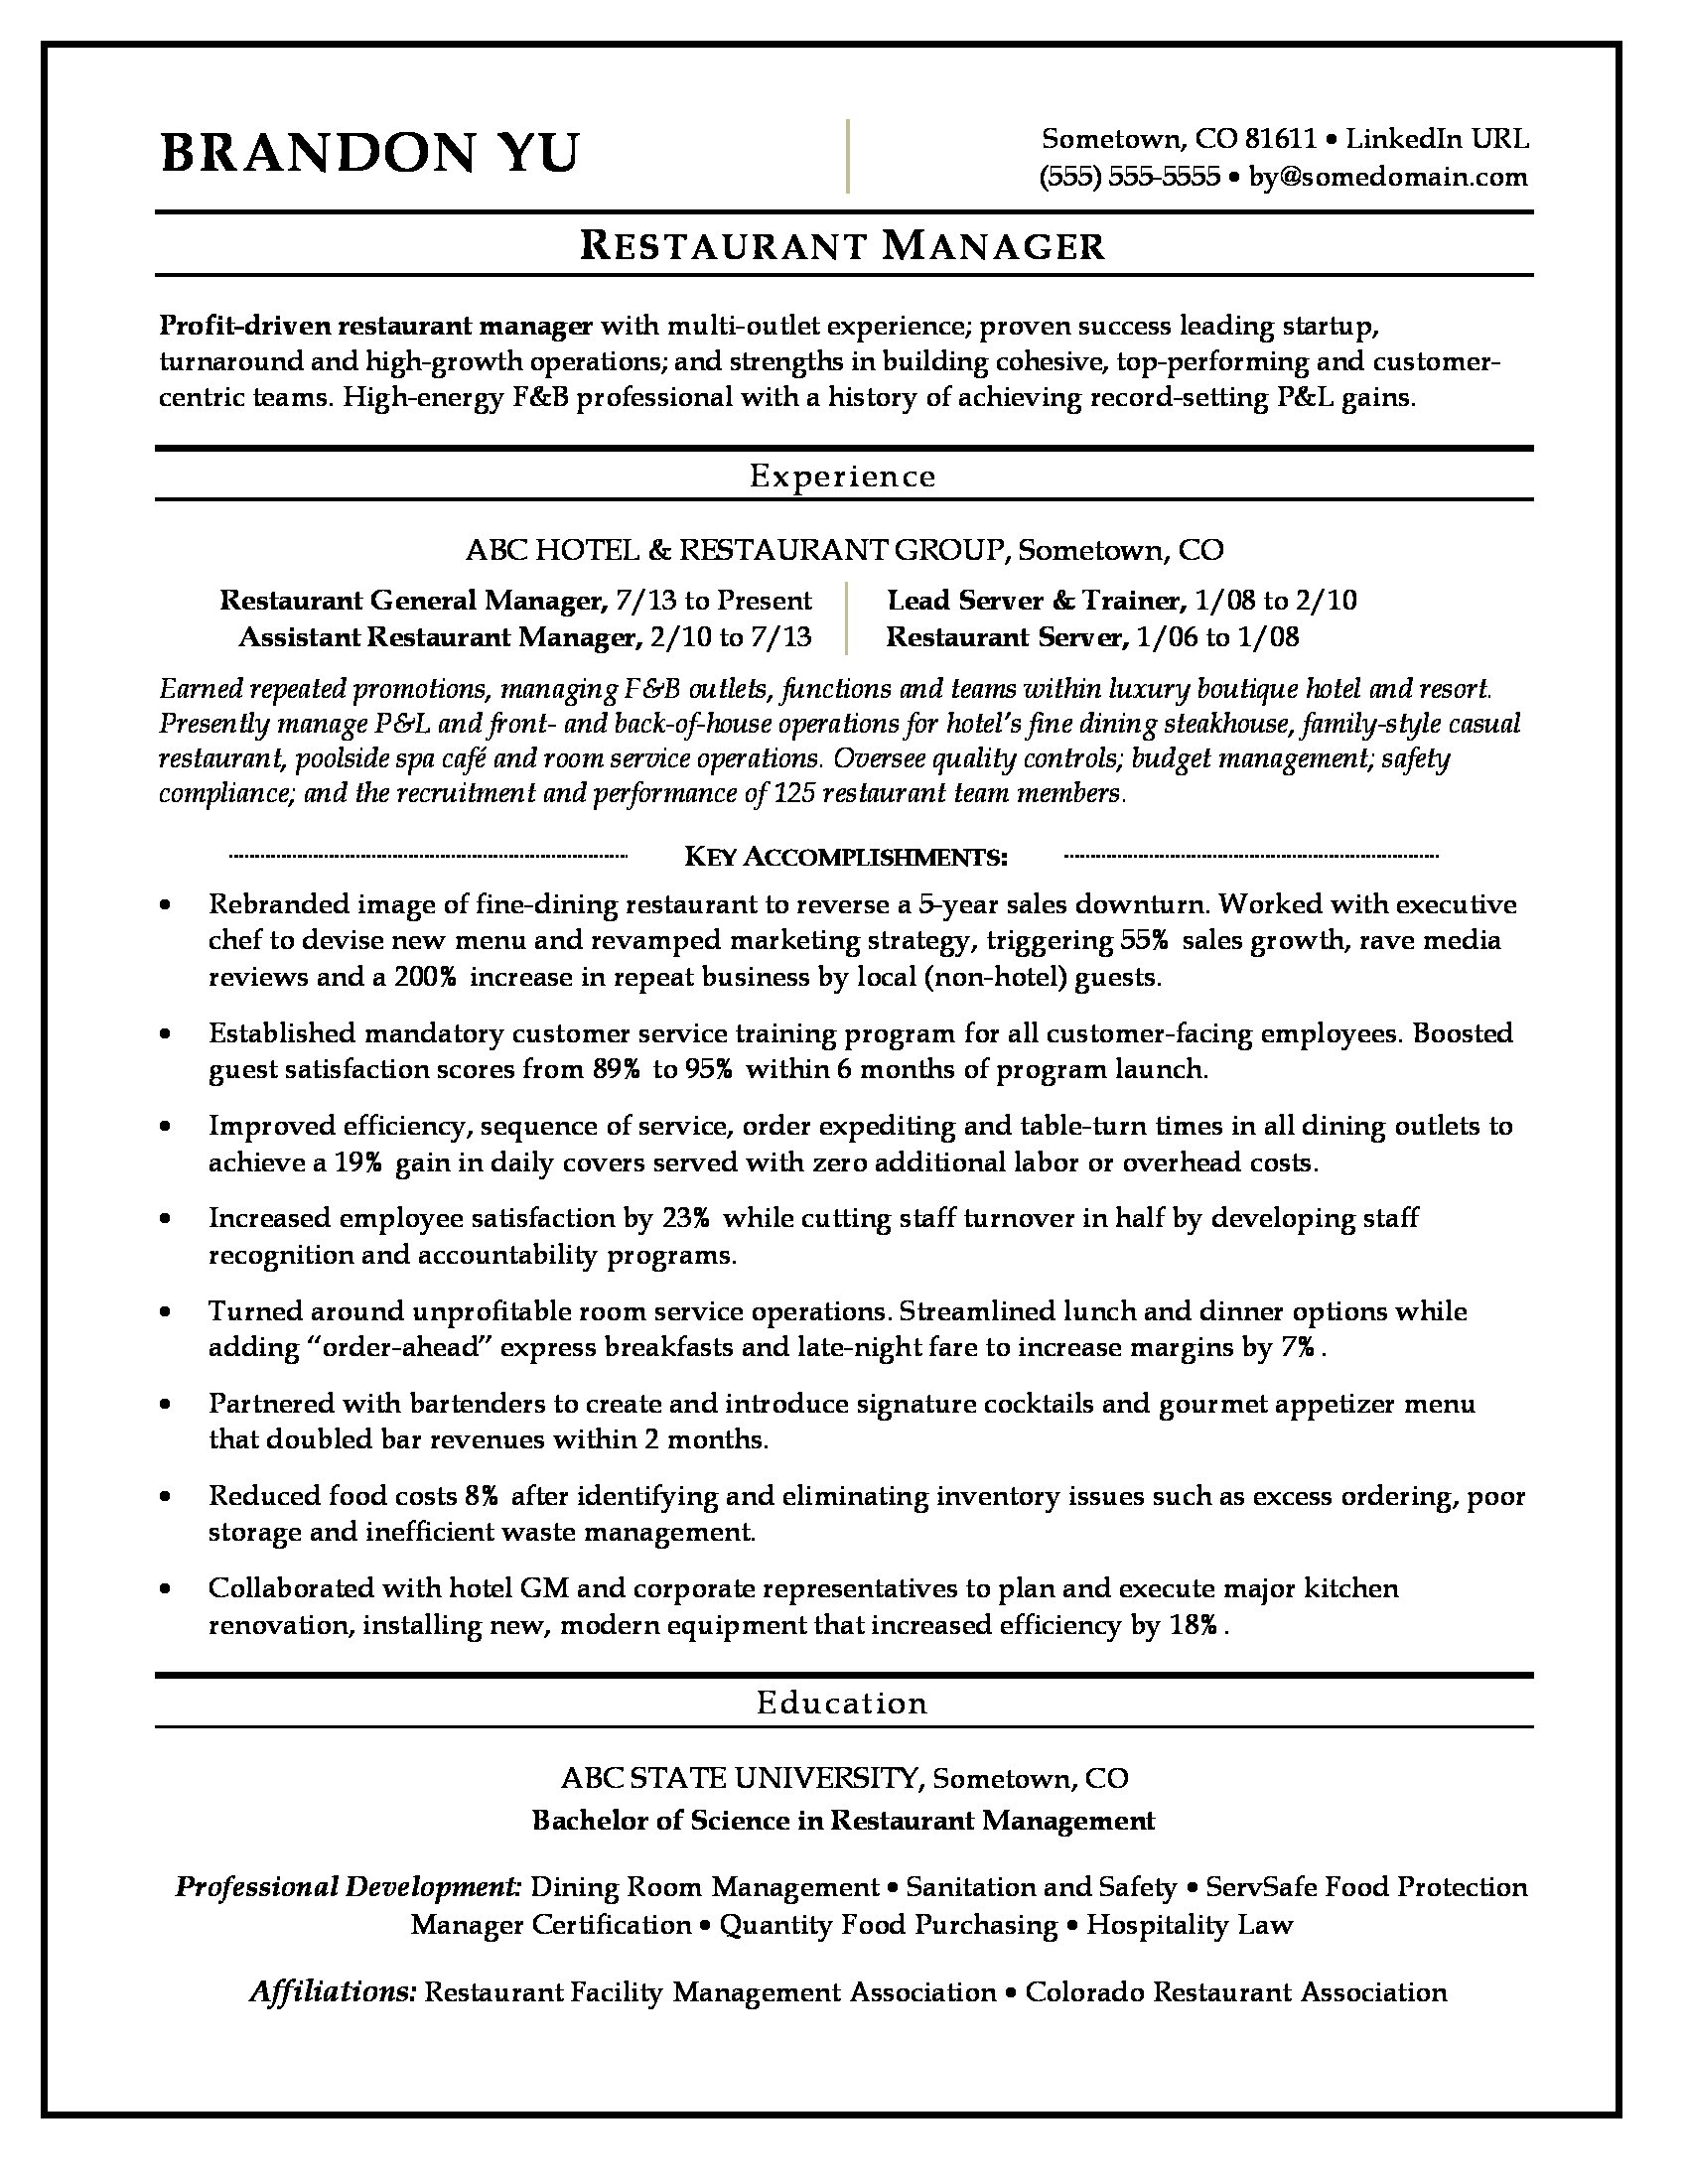 sample resume for a restaurant manager - Sample Executive Resume